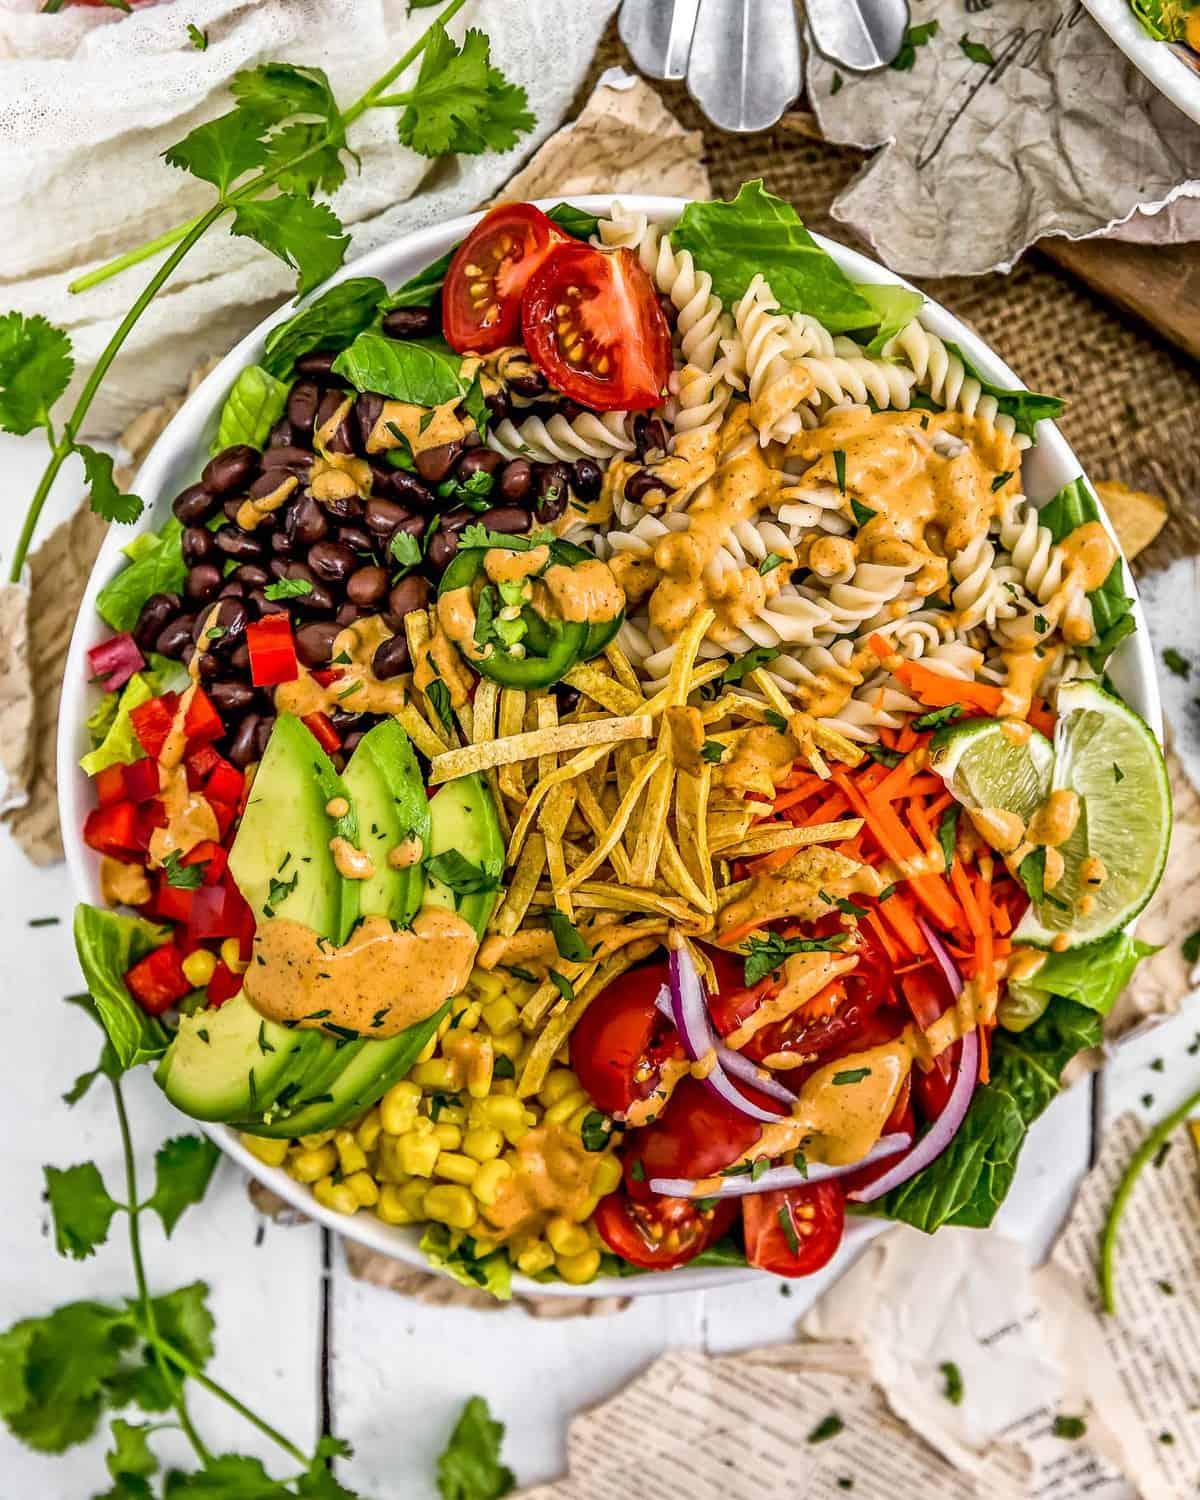 Vegan Creamy Taco Dressing drizzled on a veggie bowl